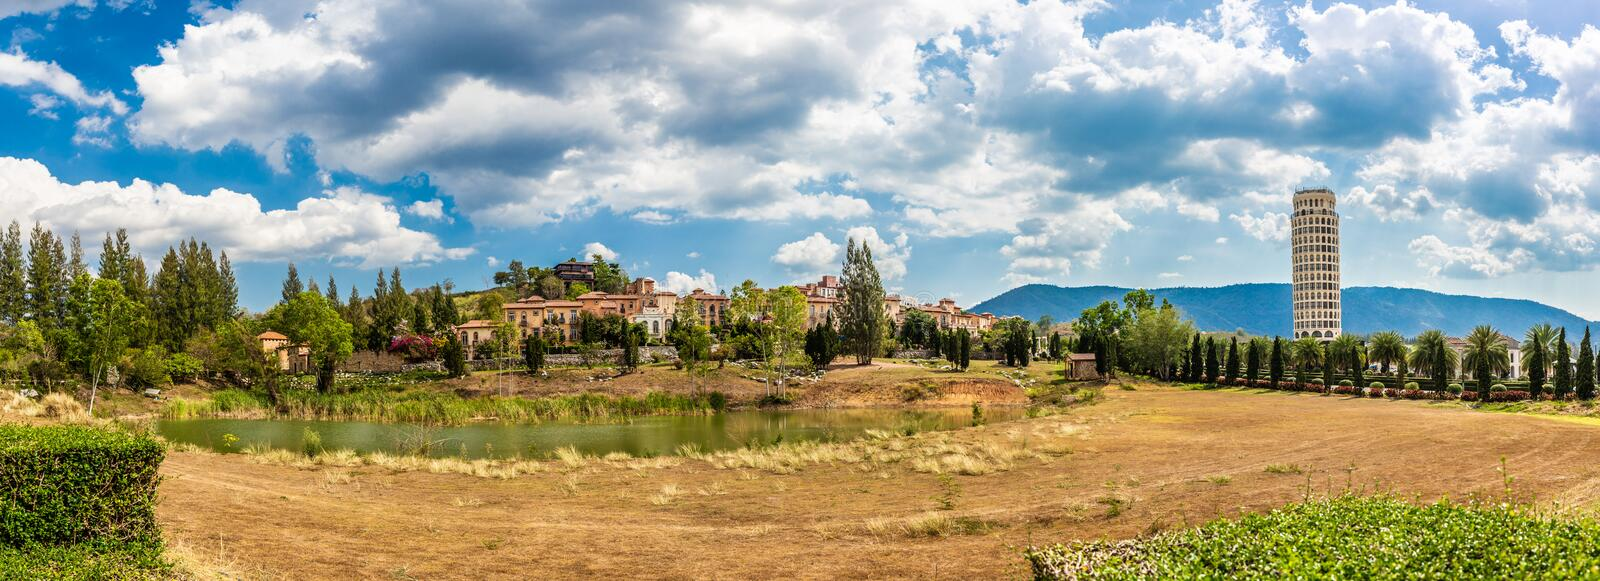 Panorama landscape of Beautiful typical romantic vintage Italian style house and building in village and mountain royalty free stock photos